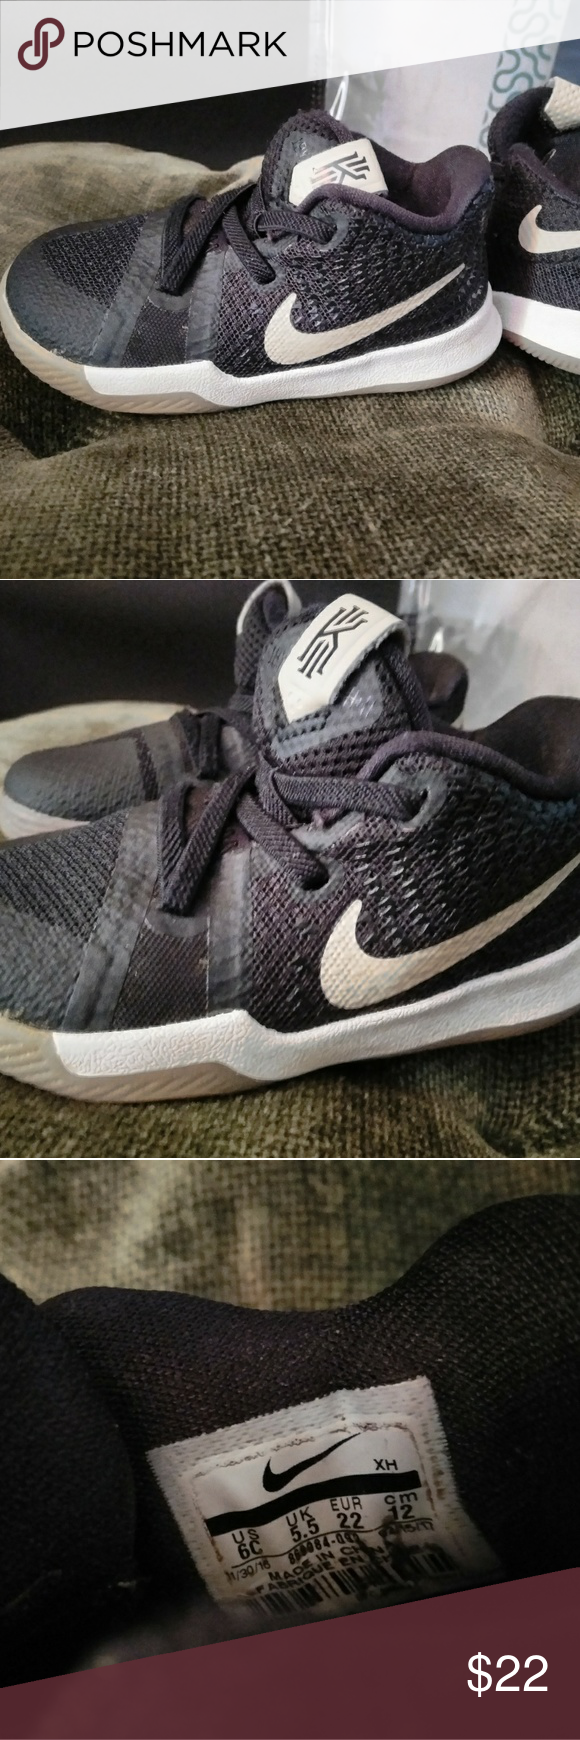 fc0bb7227a96 Kyrie Irving toddler 6c shoes Gently used. No scuffs. Smoke free home. My